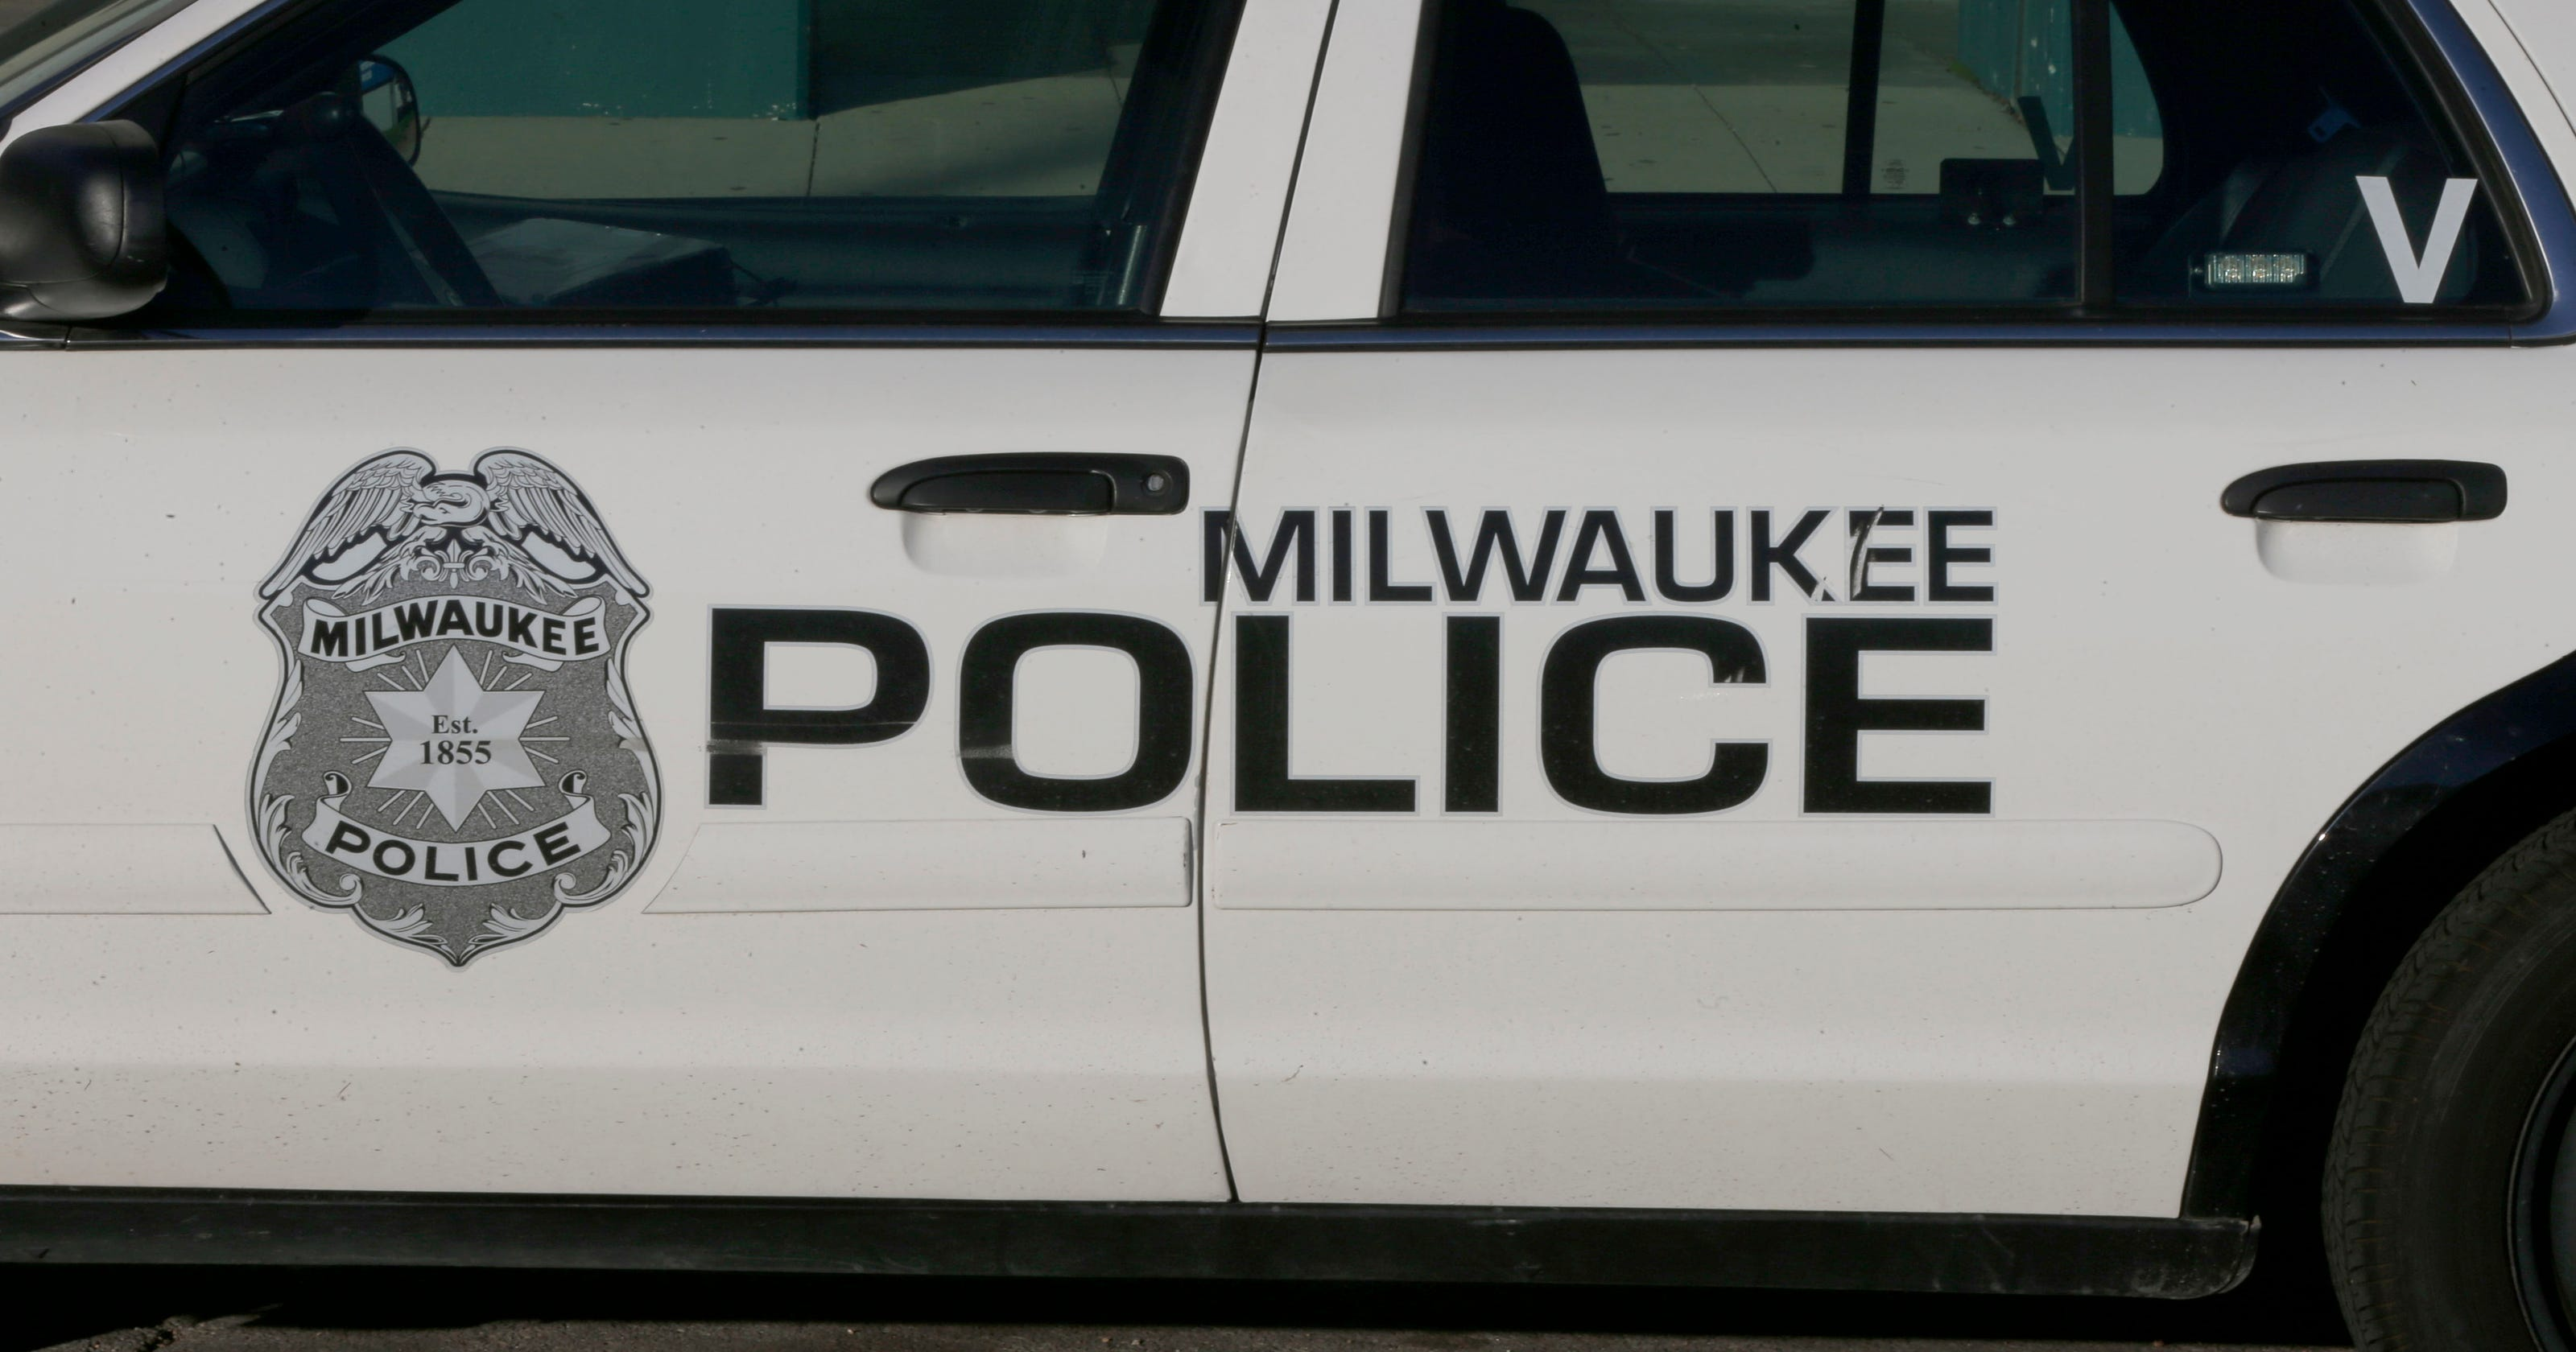 German Shepherd shot to death after dispute with Milwaukee reckless driver boils over